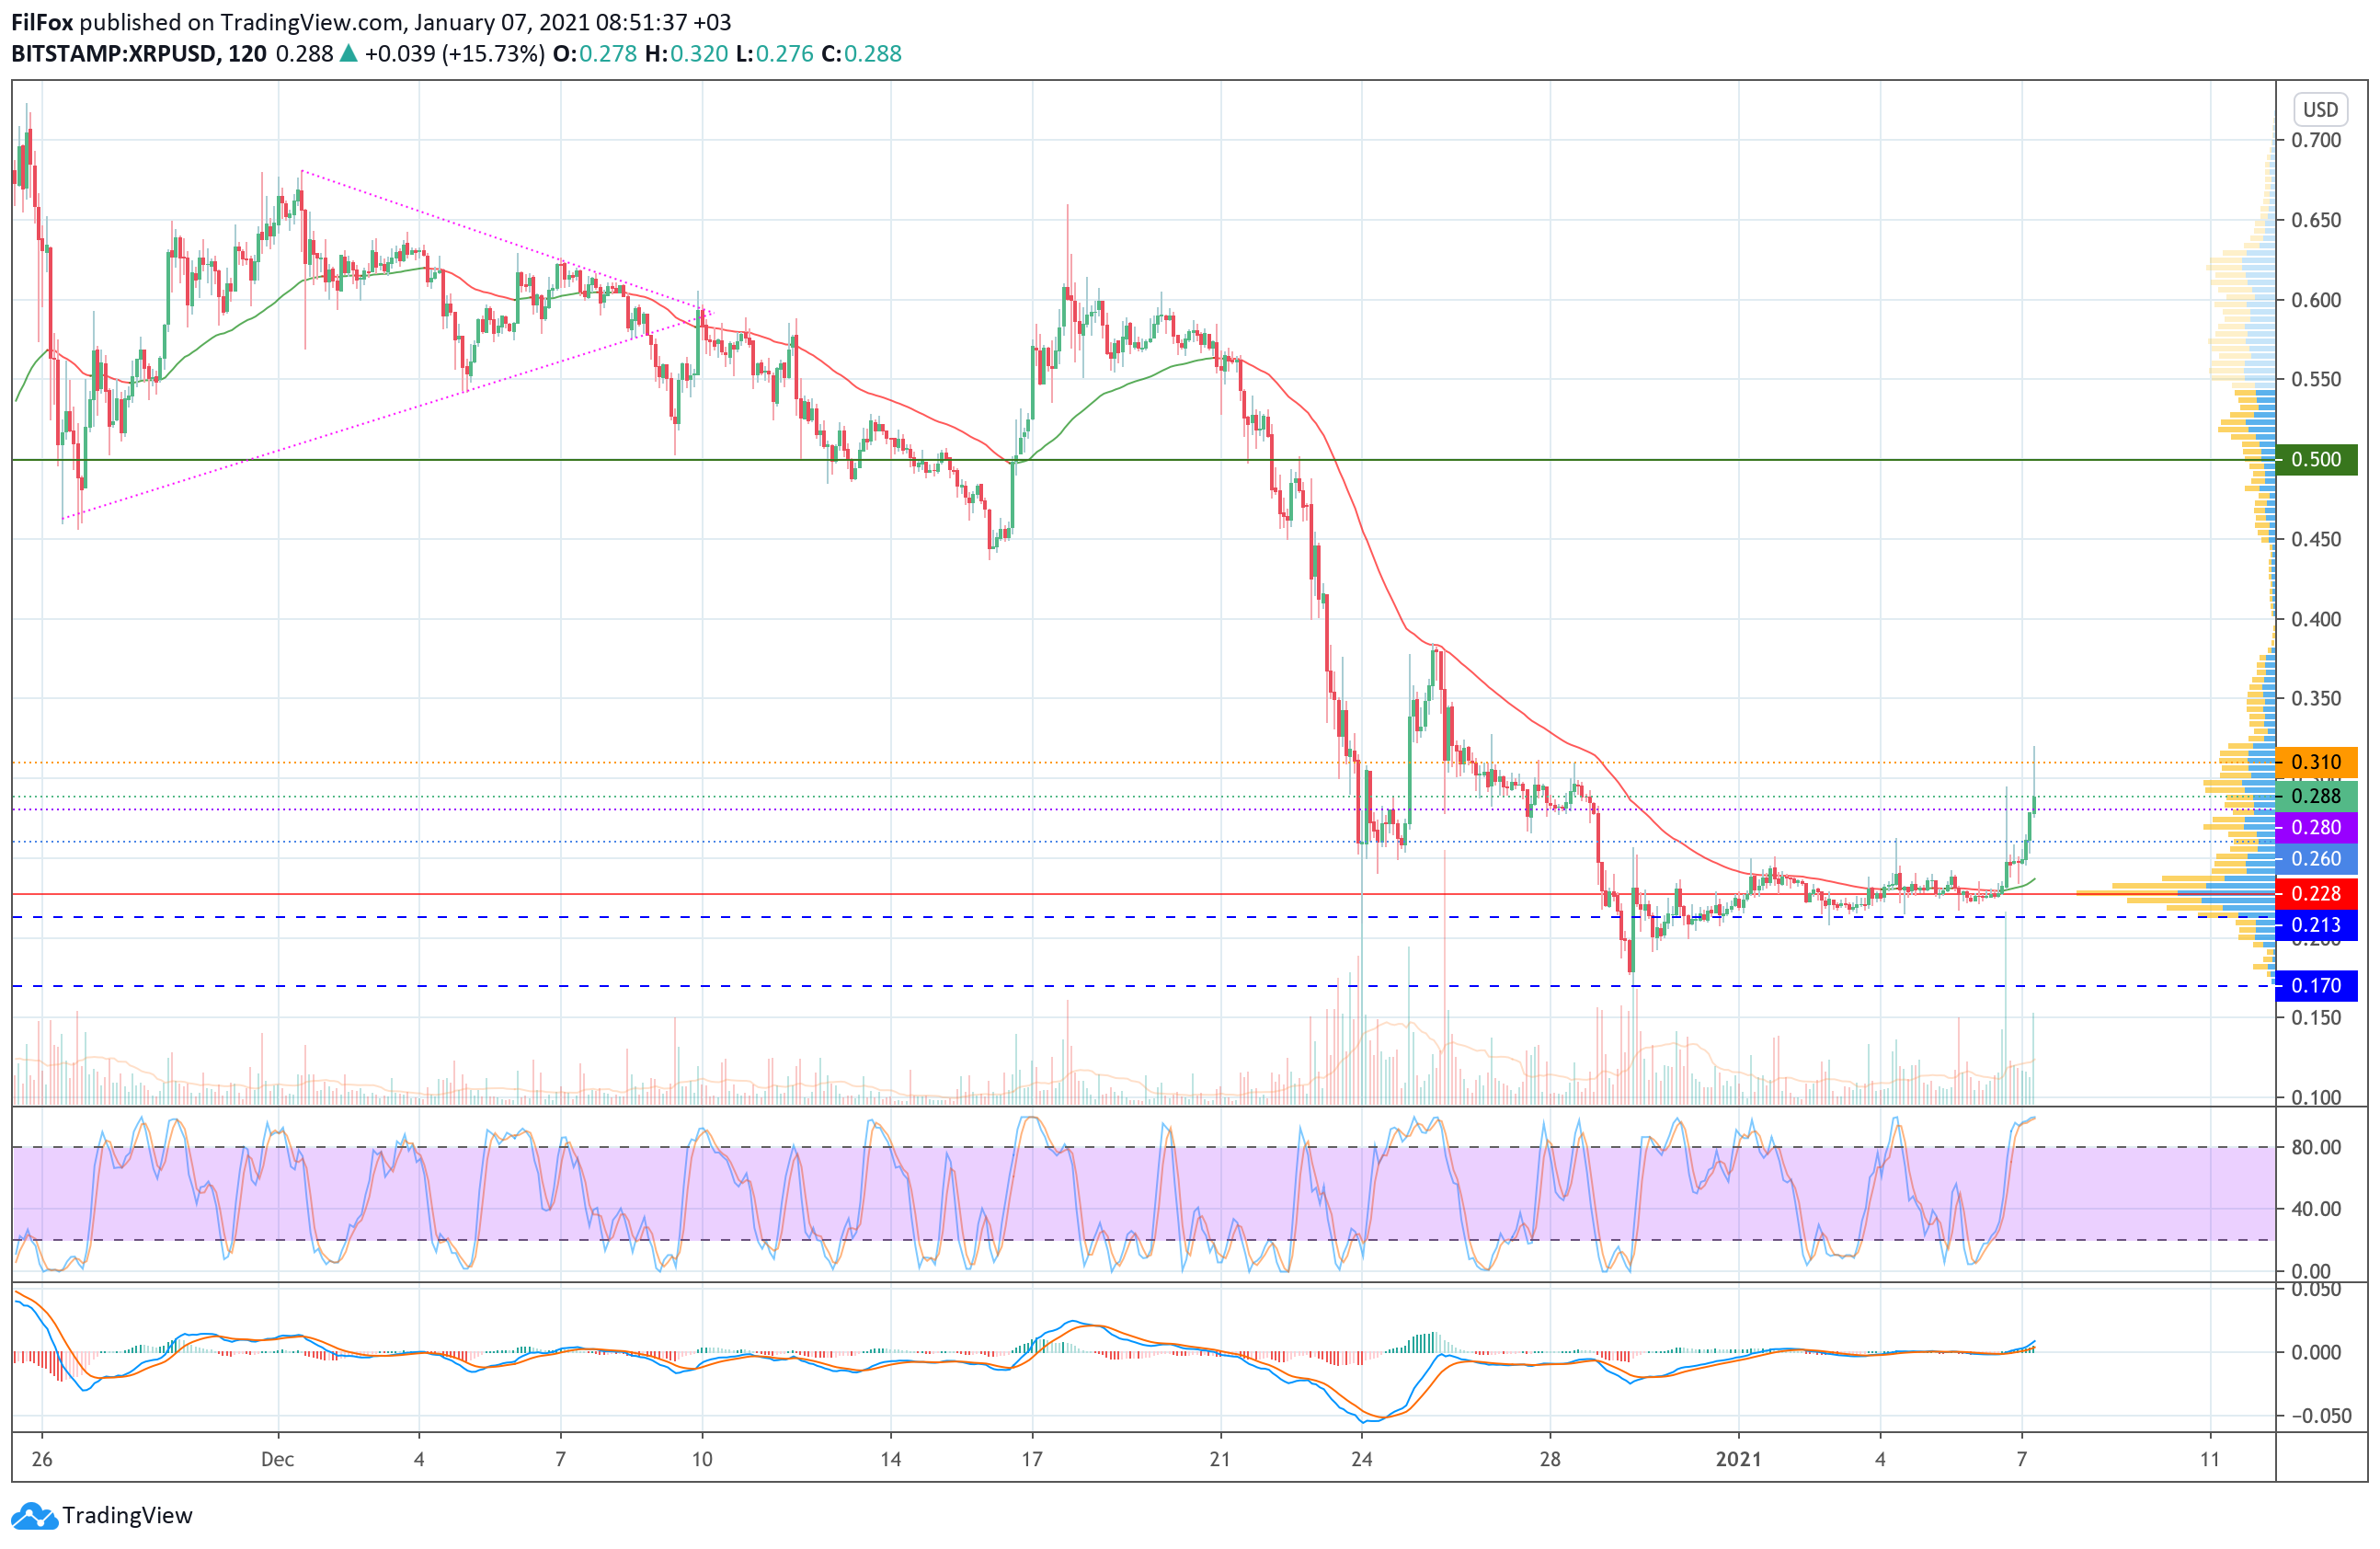 Analysis of prices for Bitcoin, Ethereum, Ripple for 01/07/2021